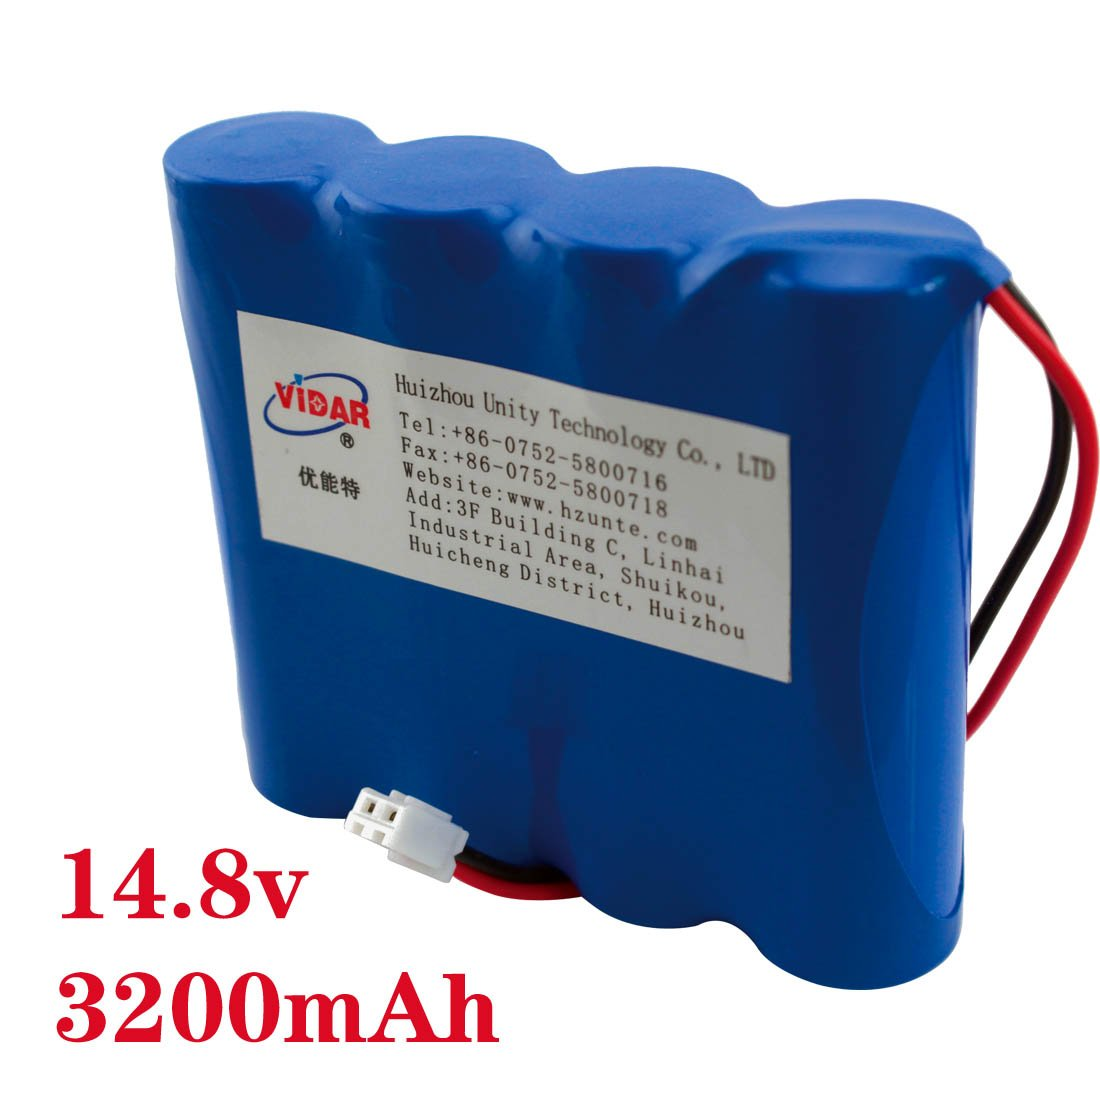 Lithium Ion Battery 148v 3200mah Cylindrical Rechargeable Xpower 18650 2600mah Liion W Protection Circuit Free Pack For Led And Power Tool